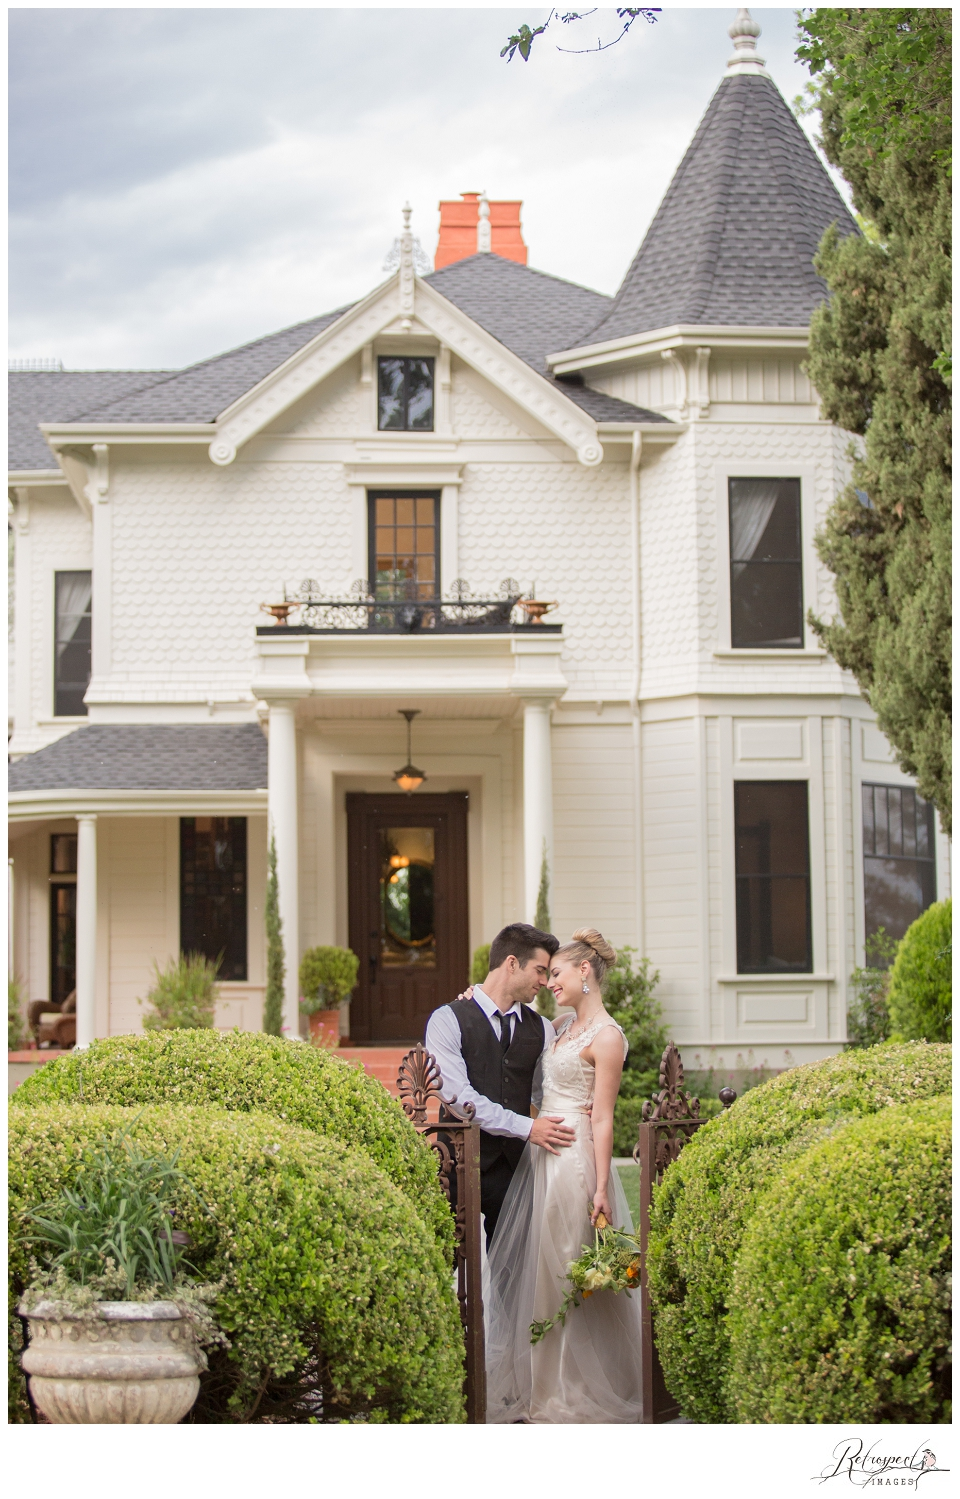 Venue Spotlight The Inn At Park Winters Northern California Wedding Venues Retrospect Images